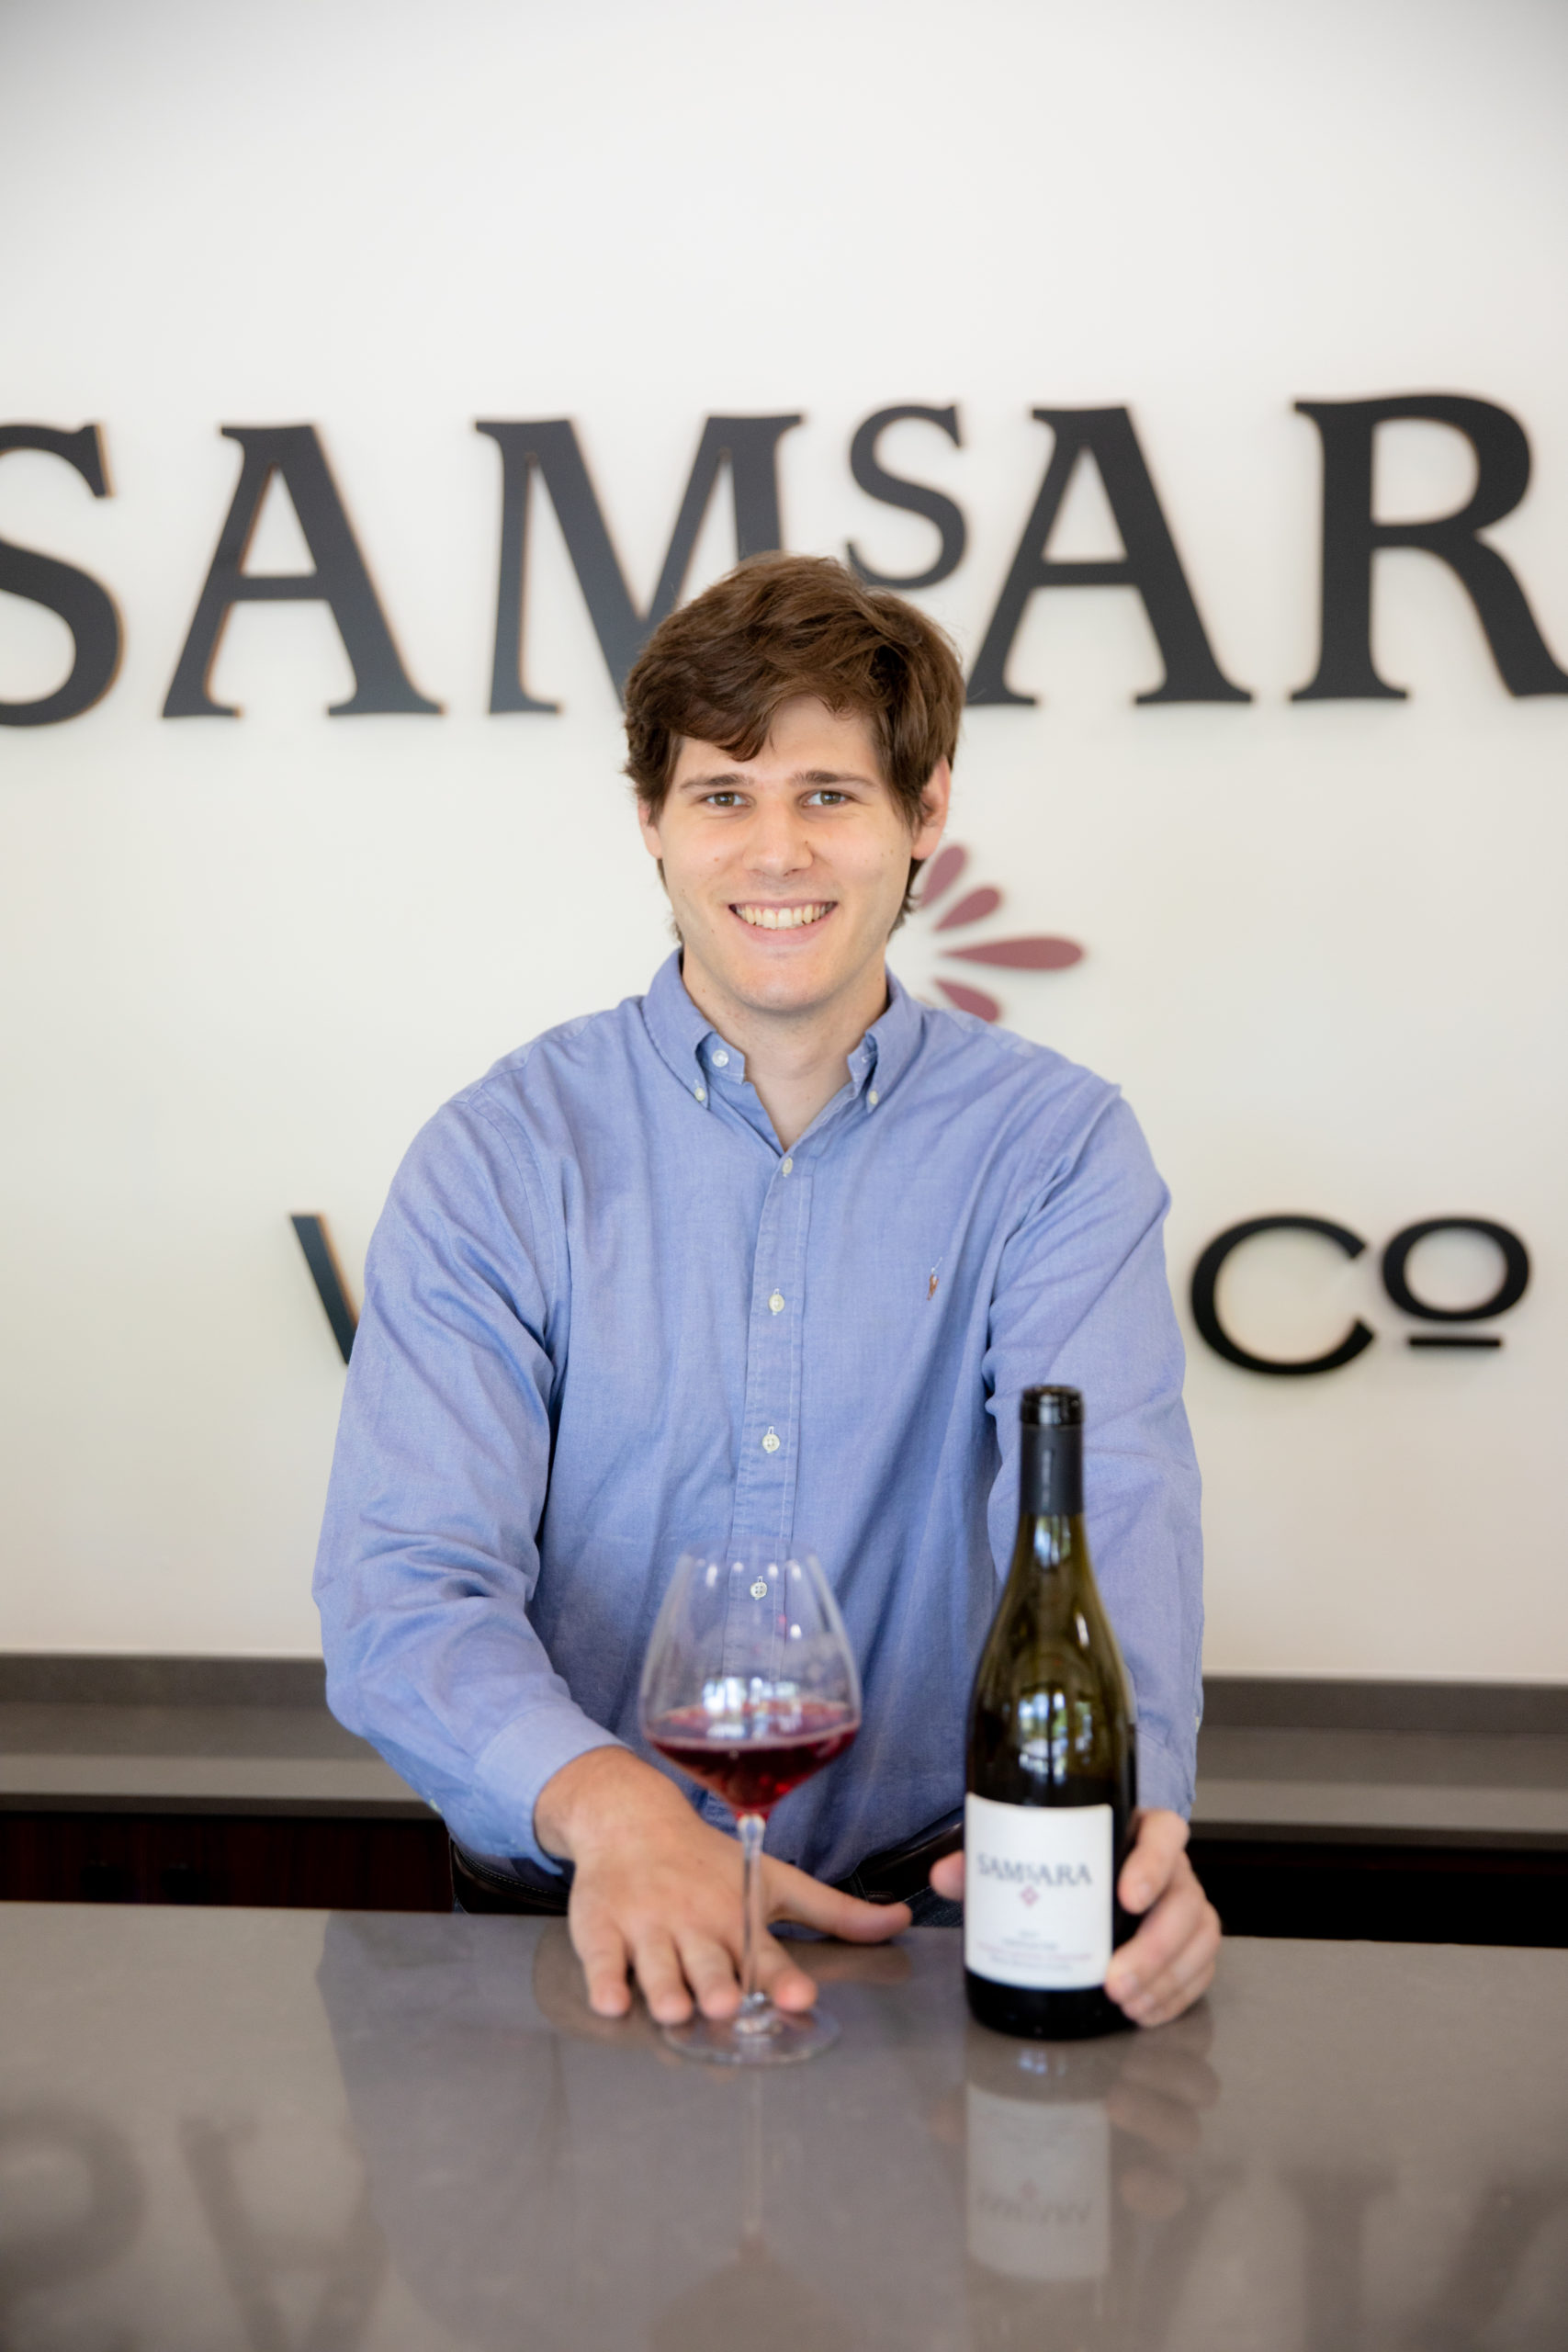 Peter McWilliams - SAMsARA Wine Co.